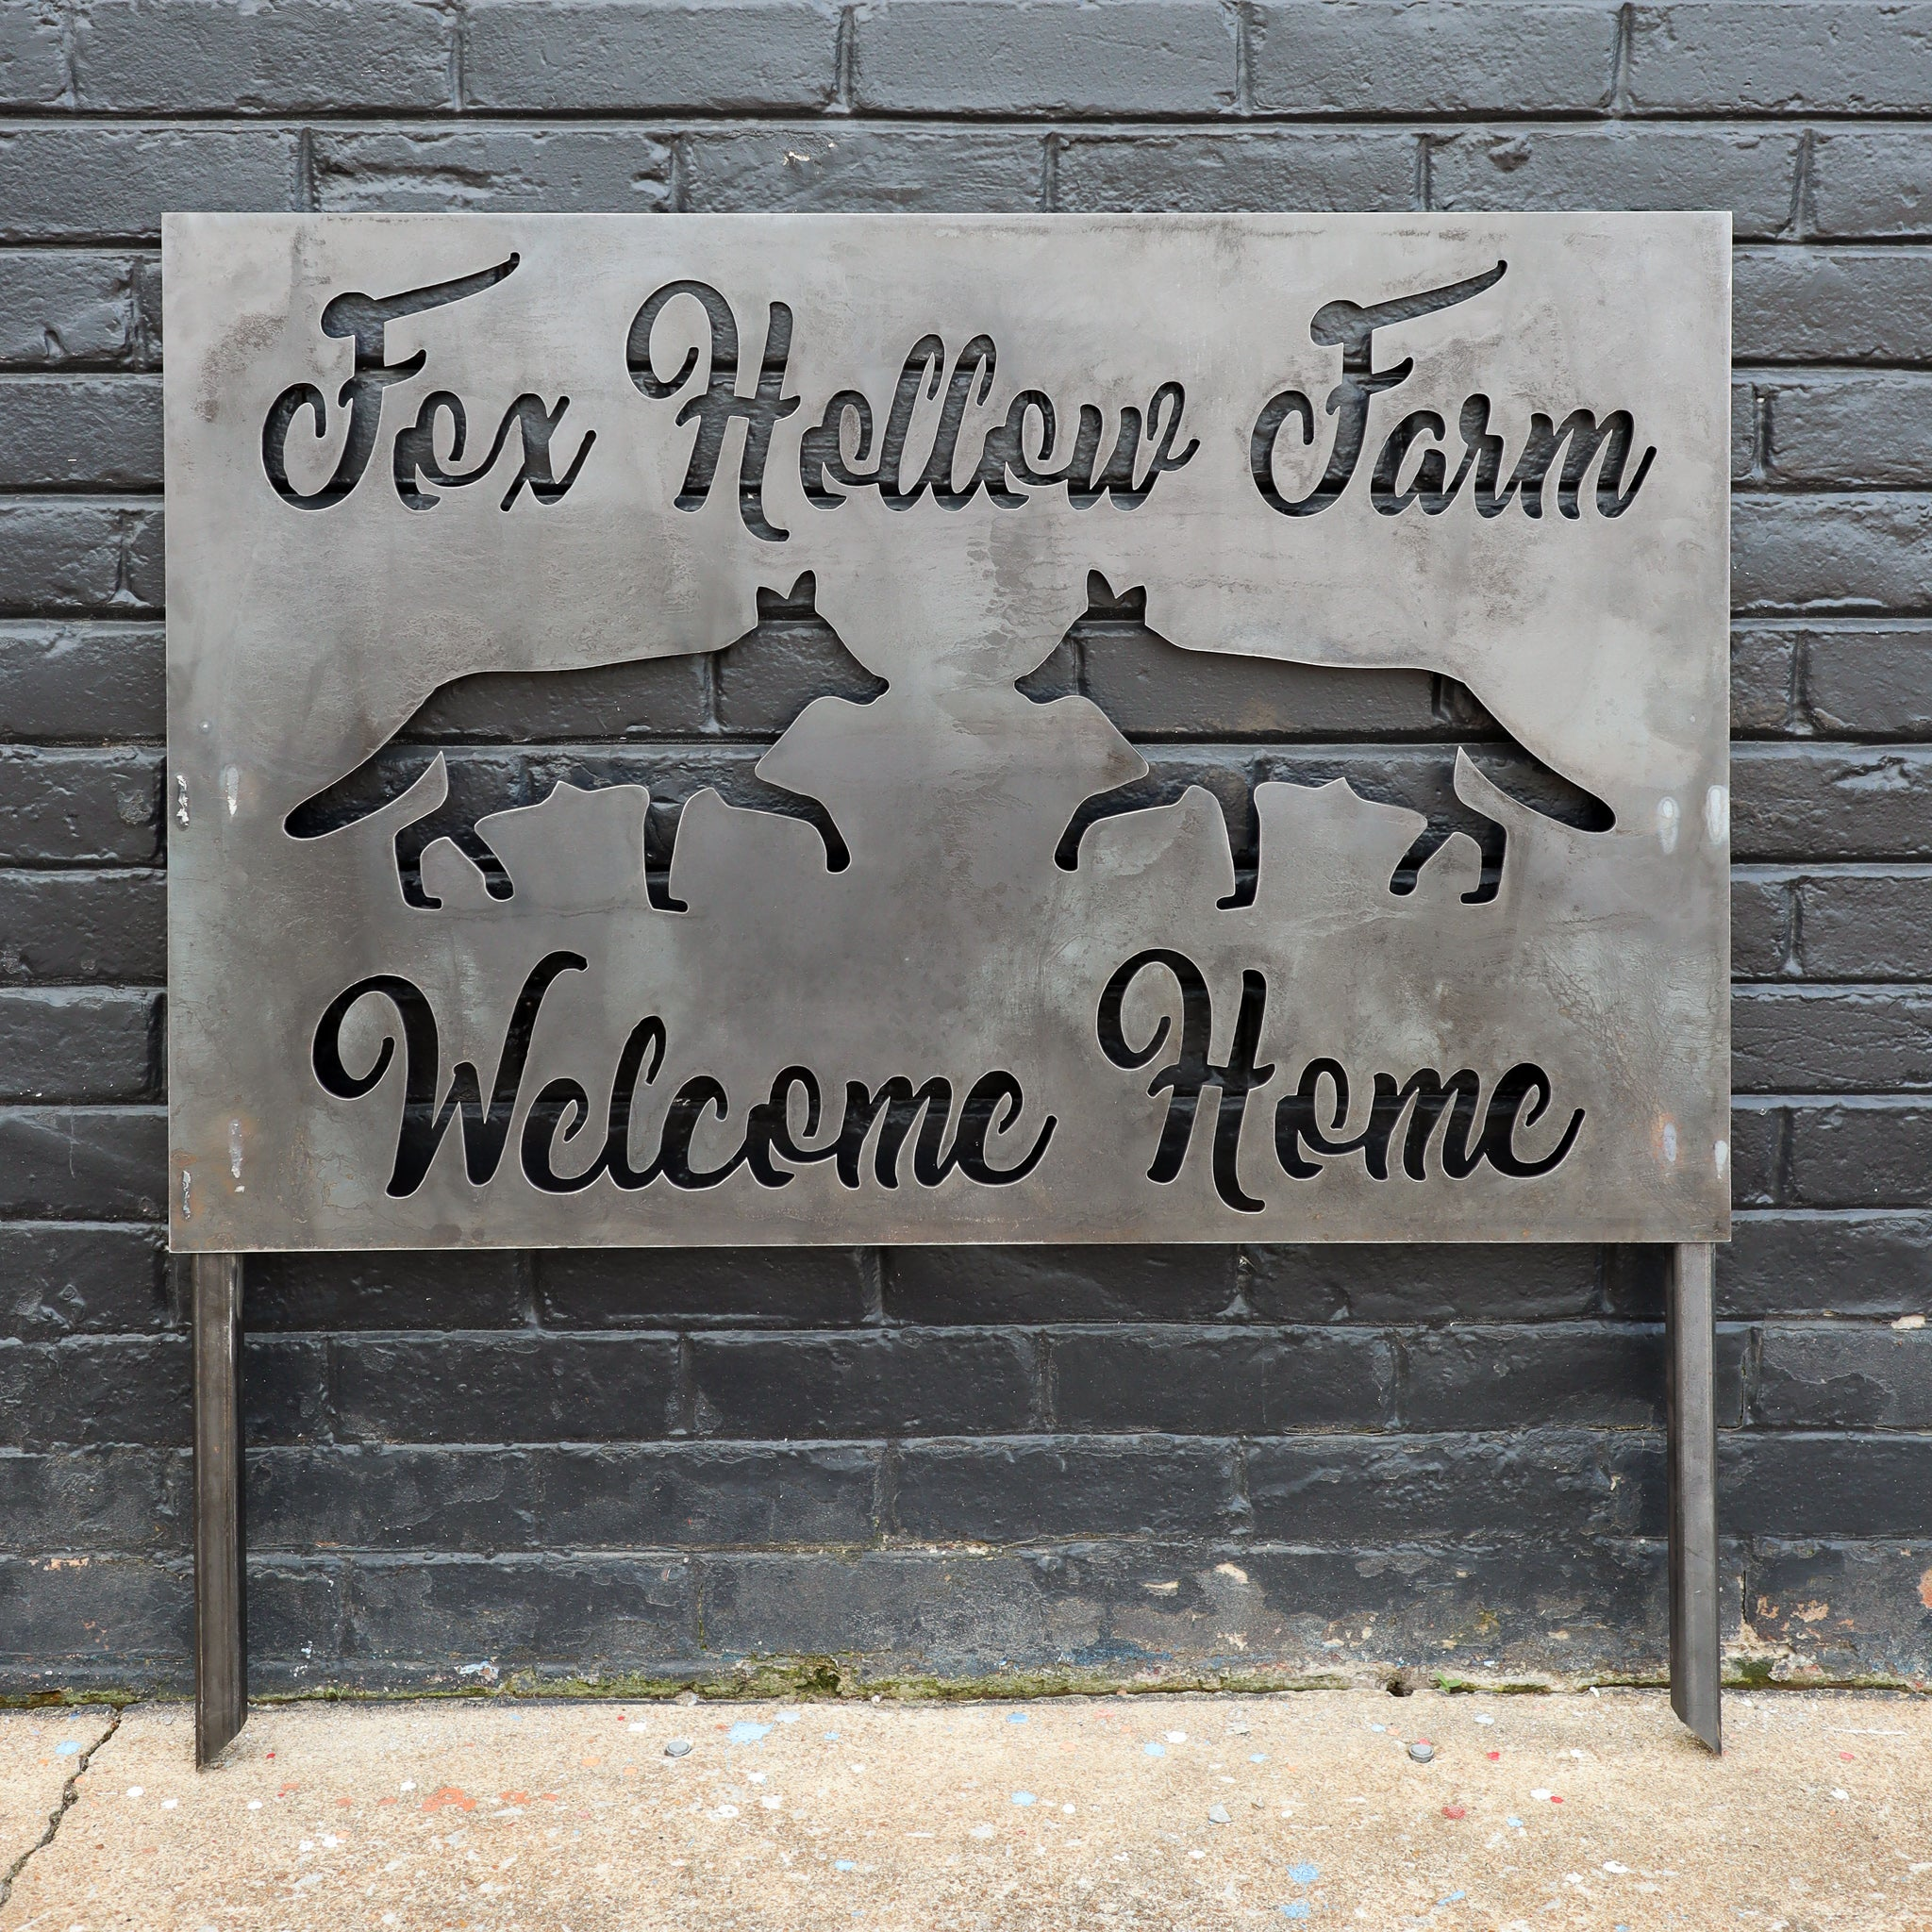 Welcome Planter Sign - Personalized Farm House Address with Stakes - Metal Front Yard Decor with Stakes